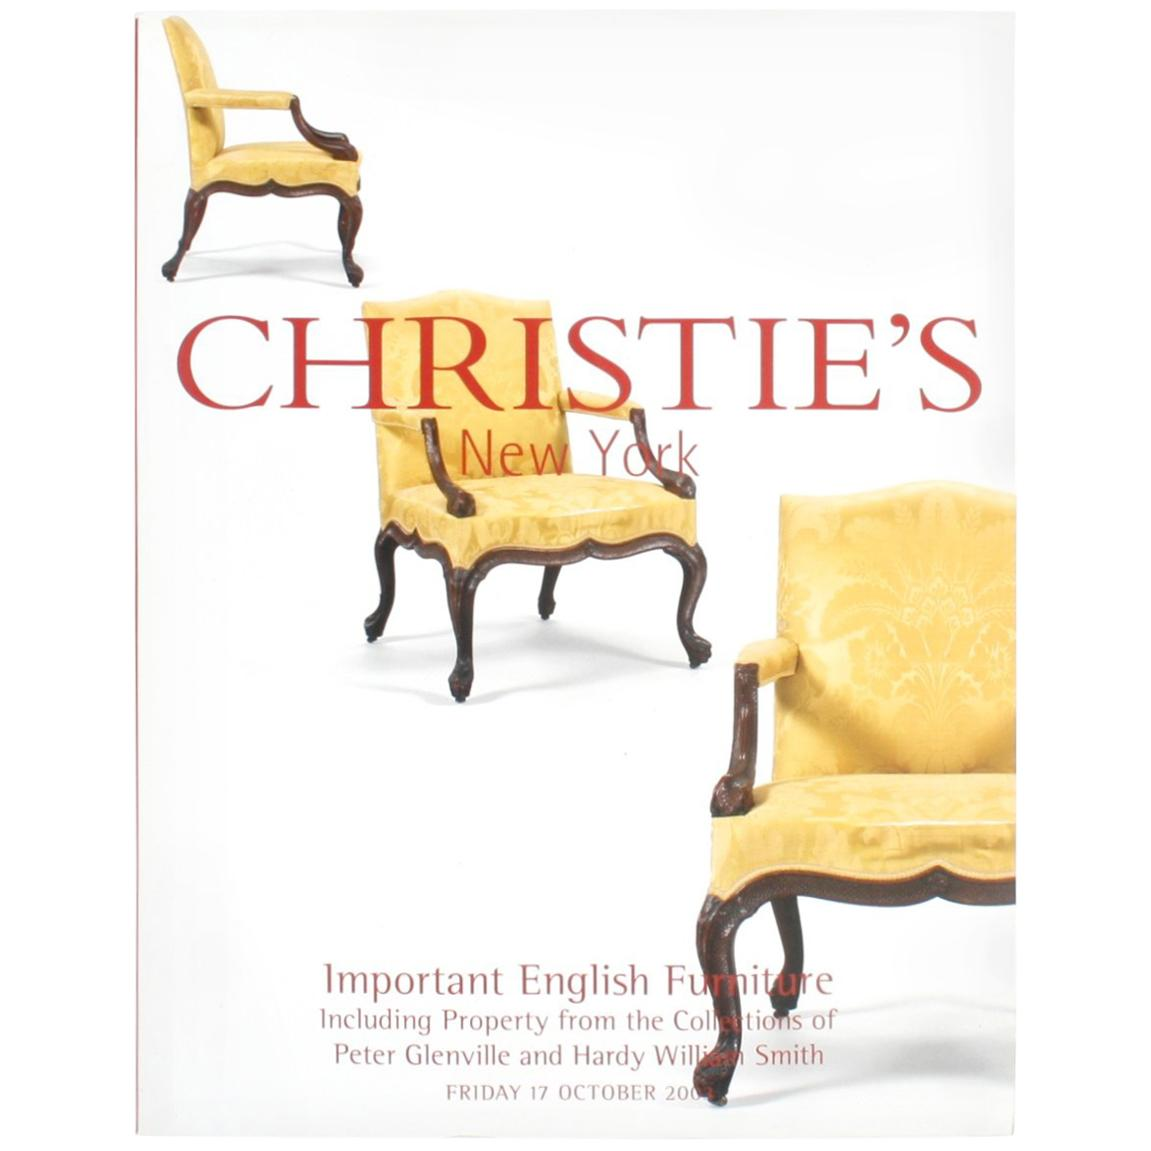 Christie's Important English Furniture, from Collections Peter Glenville